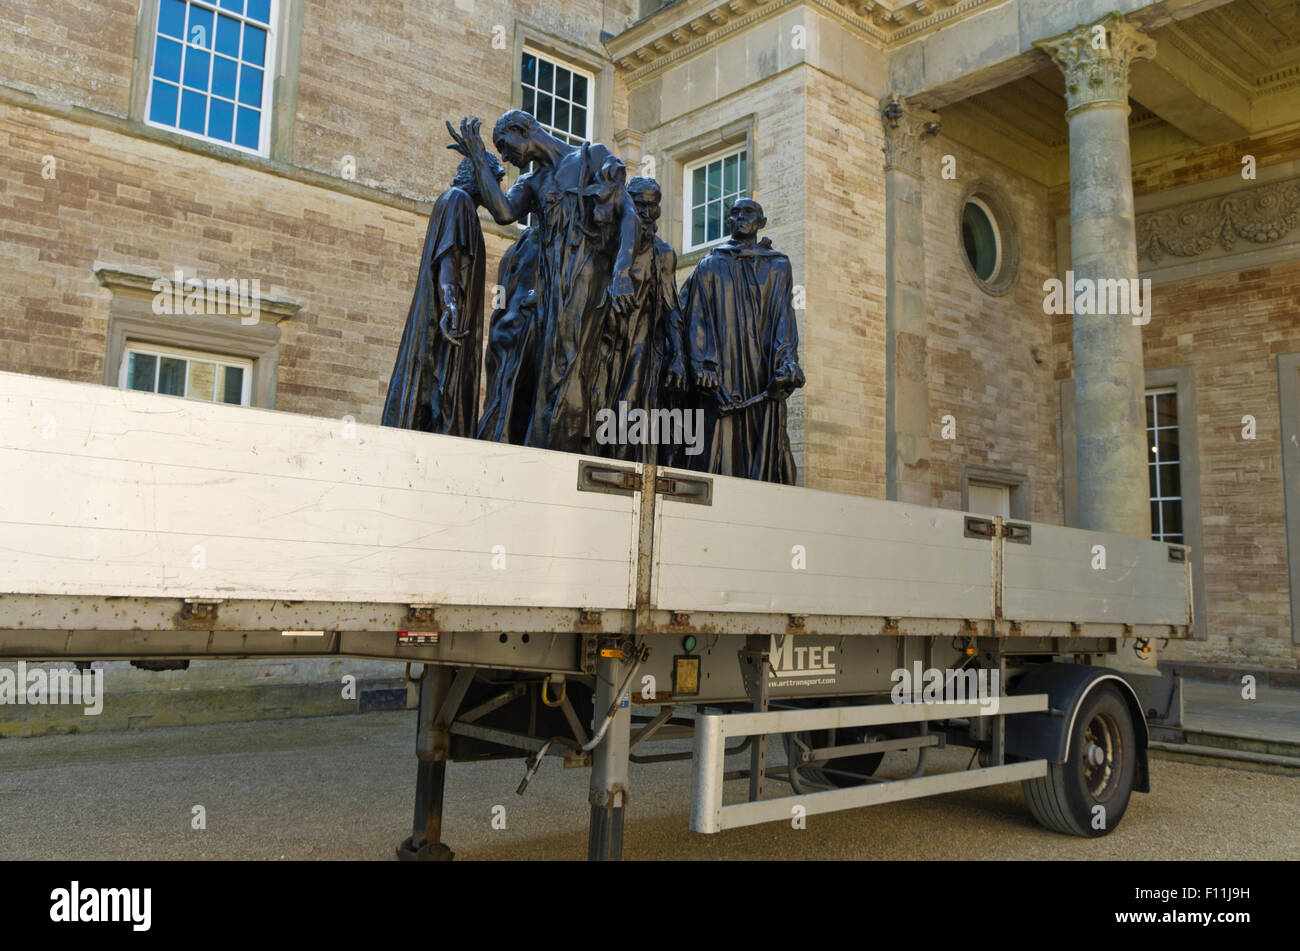 One of Auguste Rodin's most famous sculptures, The Burghers Of Calais, on the back of a removal truck, Compton - Stock Image